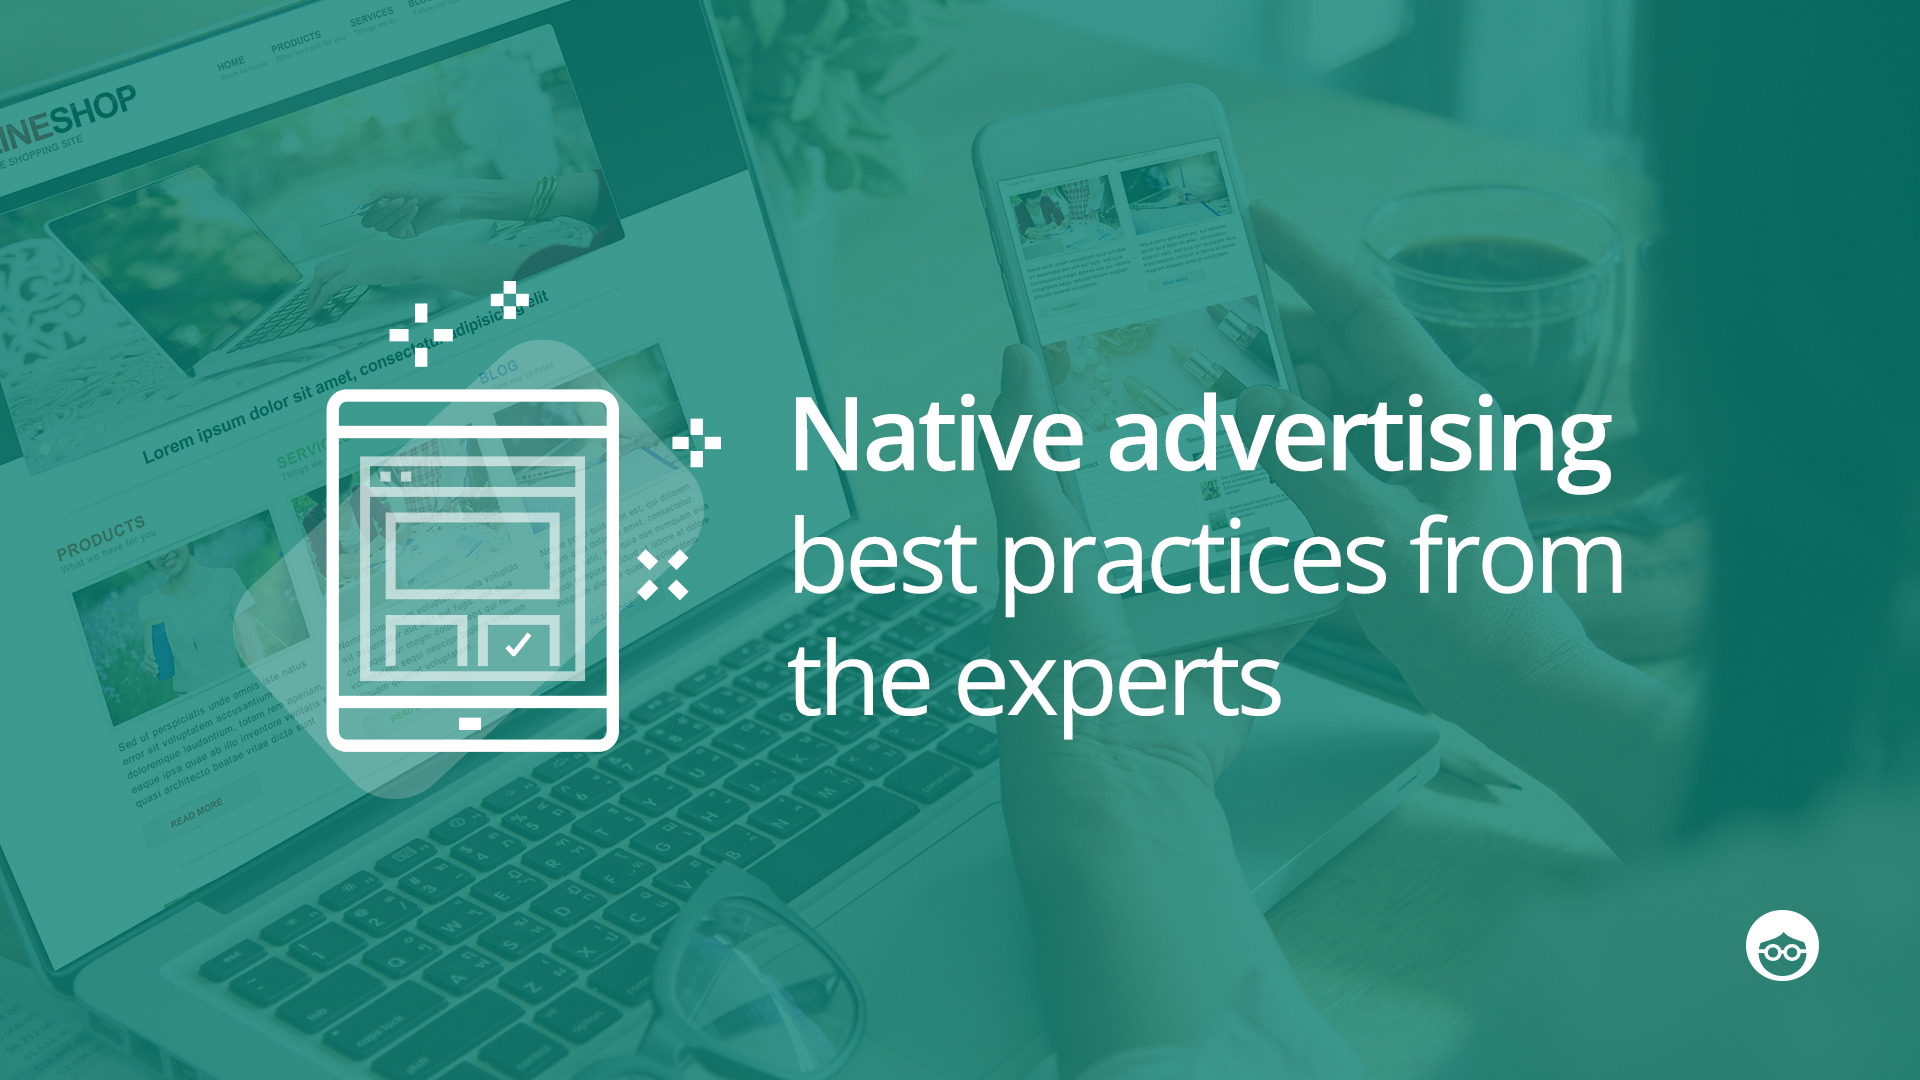 Native Advertising Experts Share Their Best Practices for